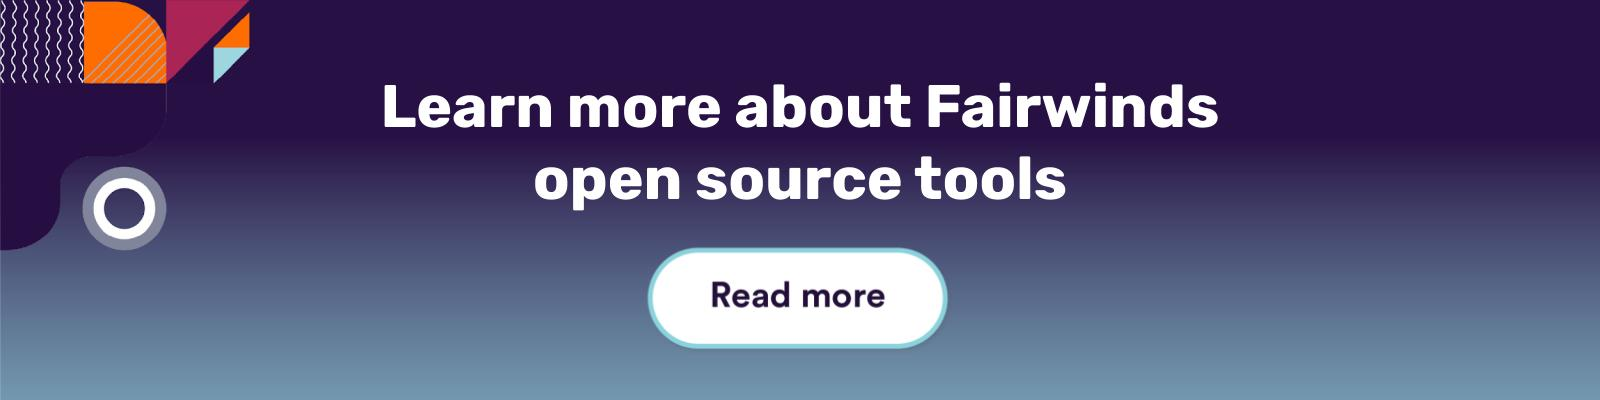 Learn more about Fairwinds Open source tools